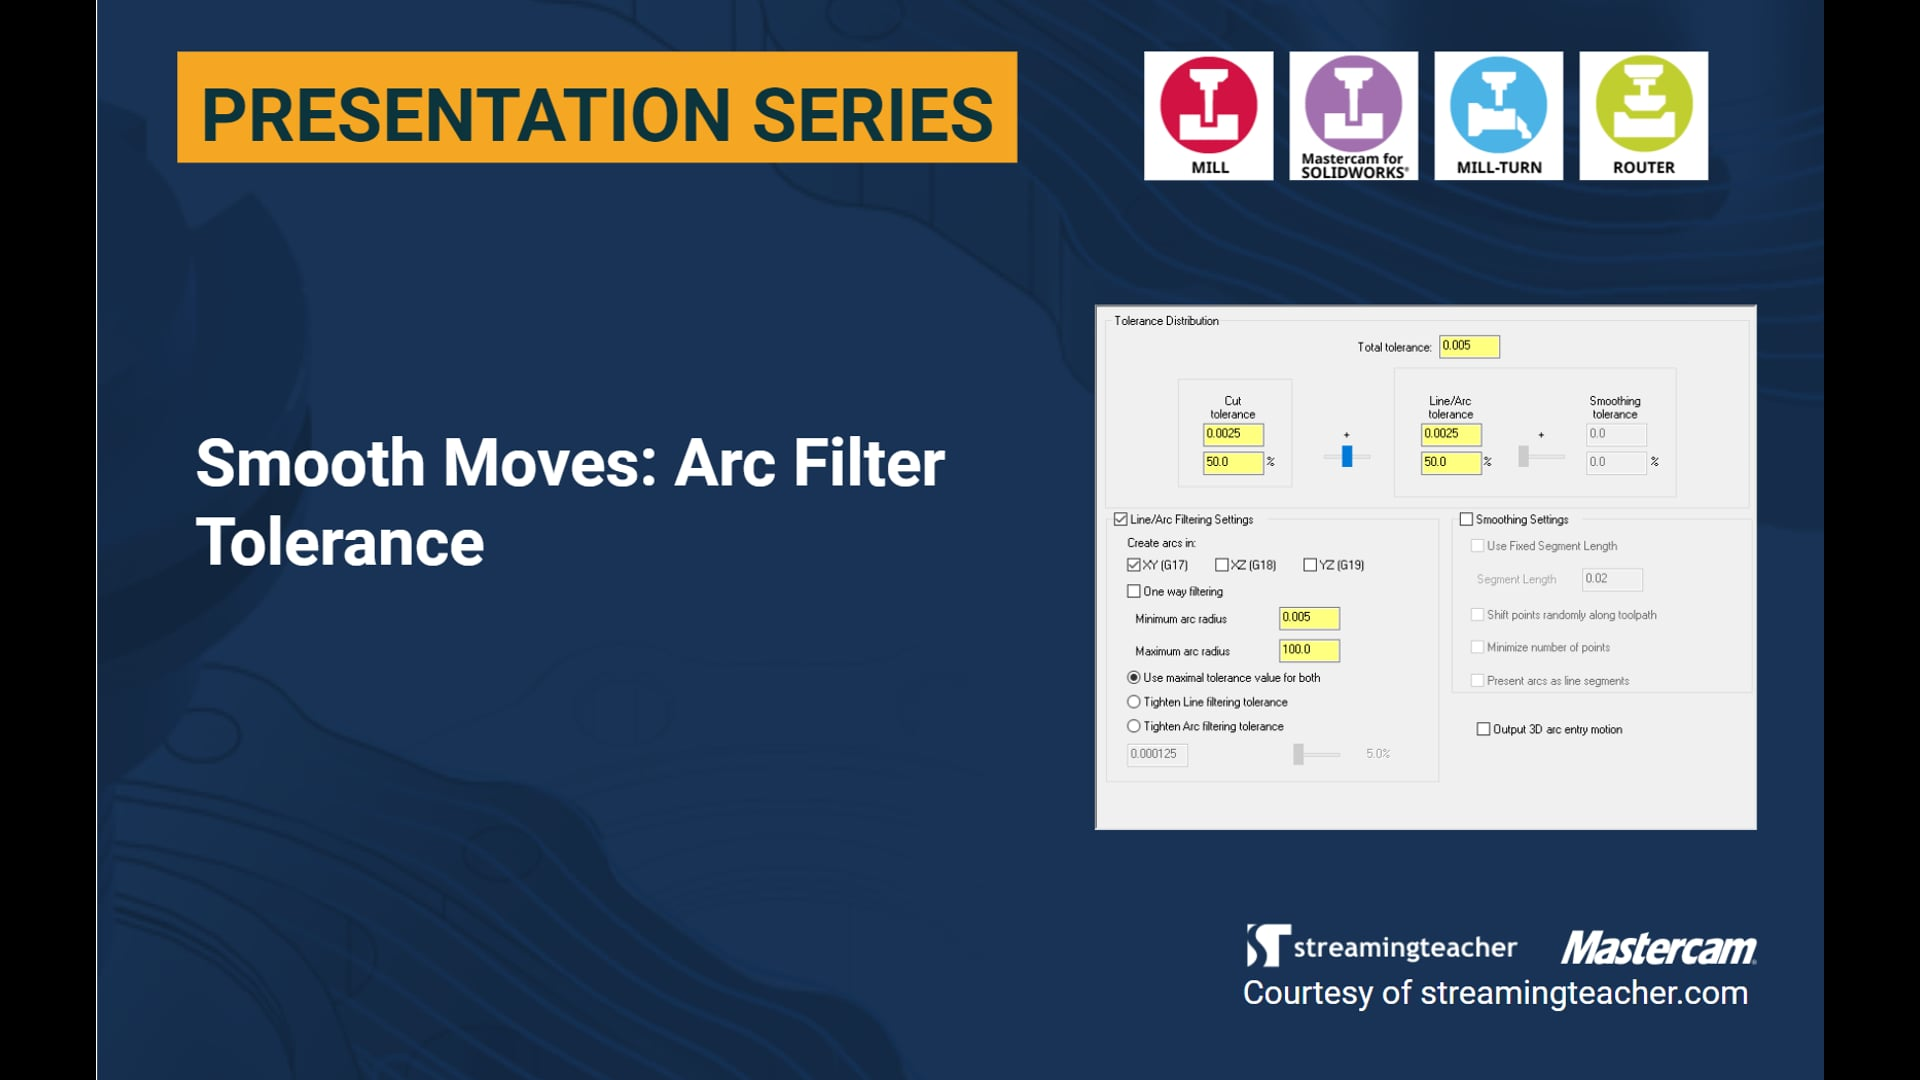 Smooth Moves: Arc Filter Tolerance